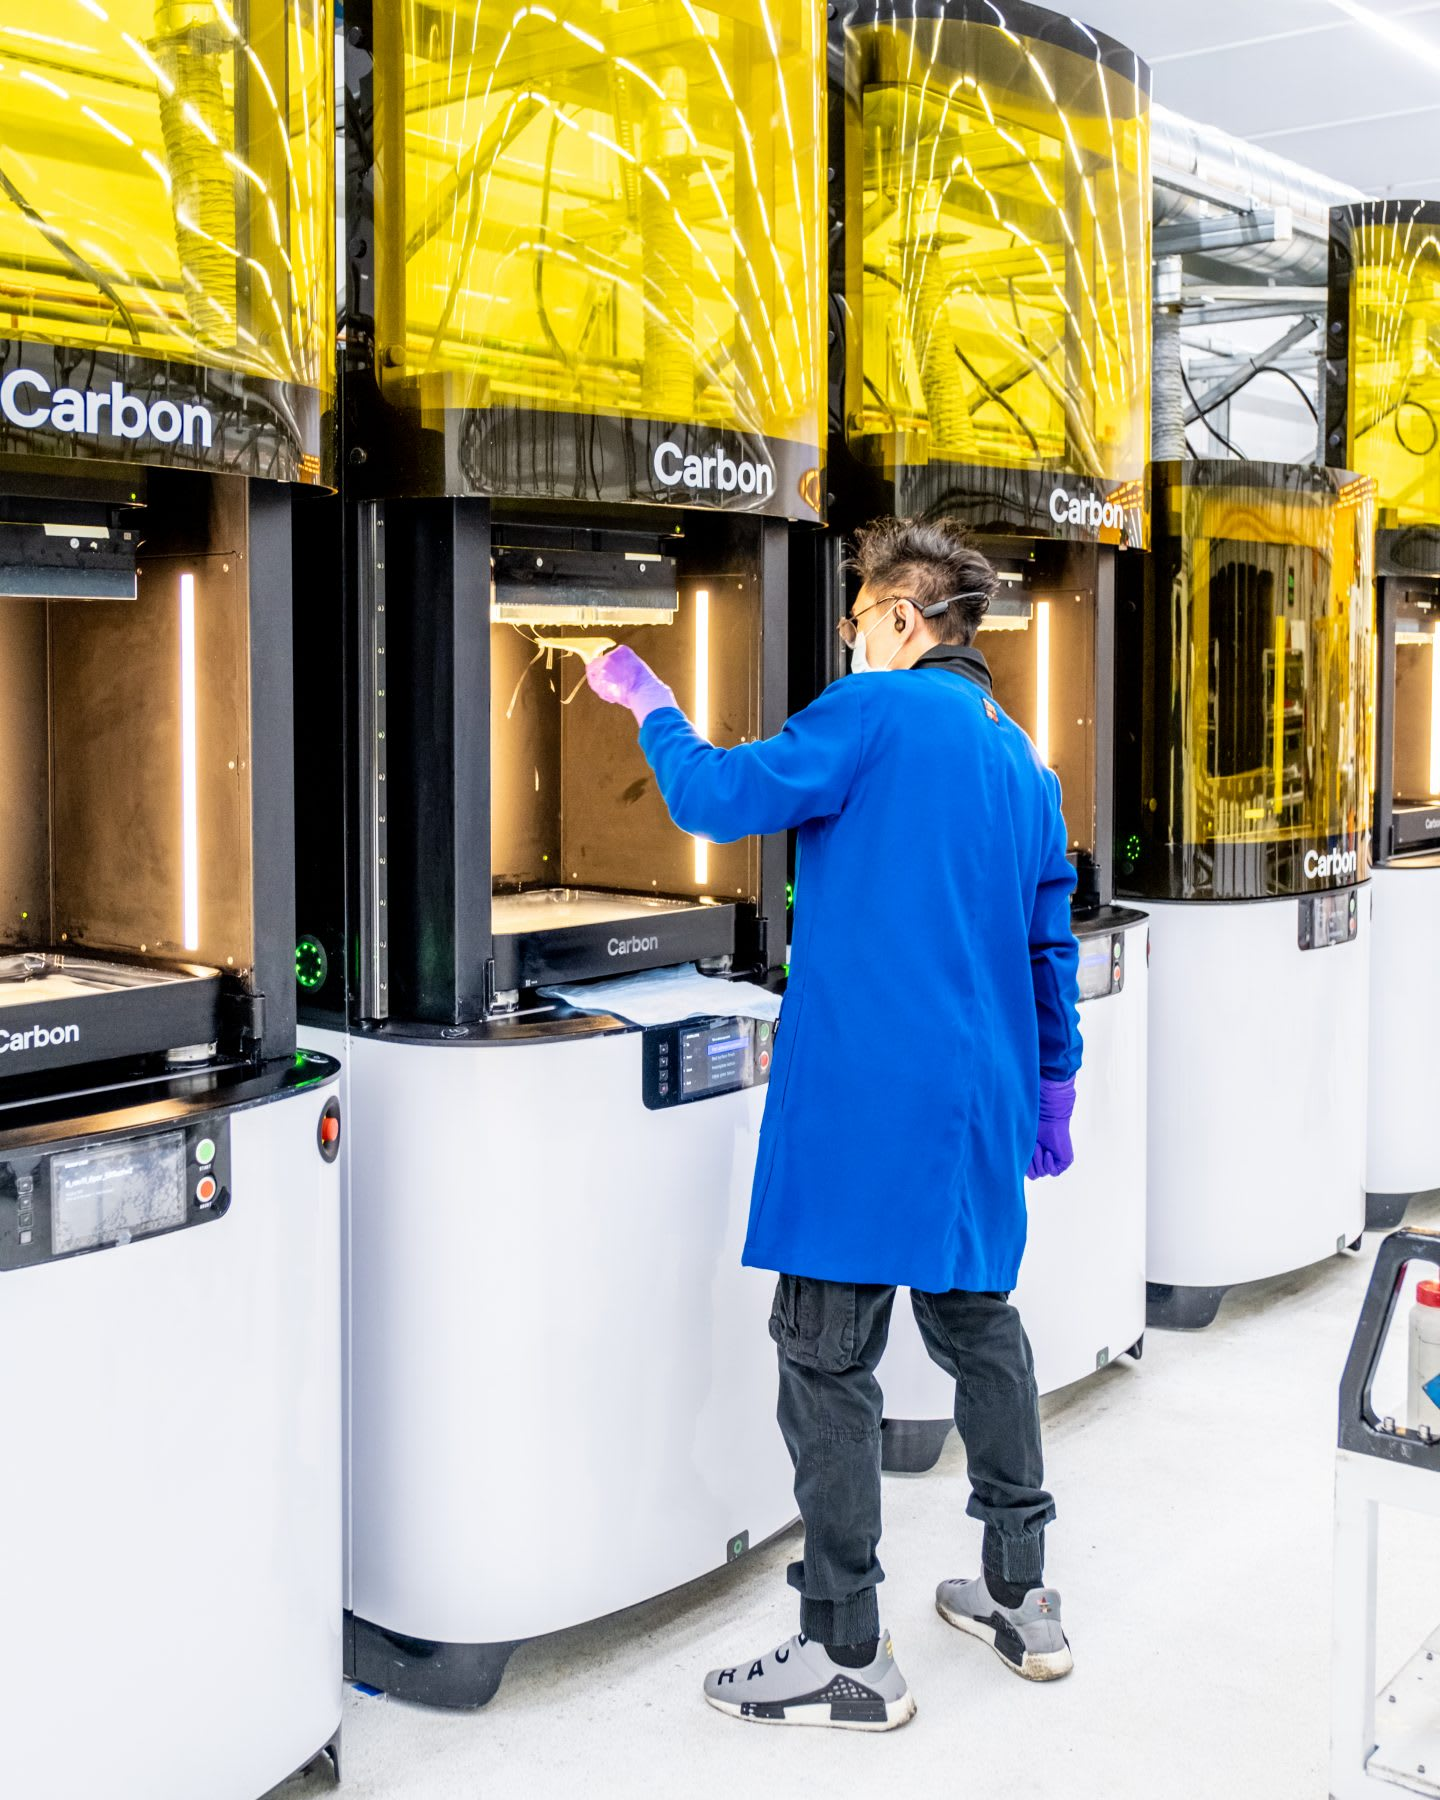 Carbon employee during the 3D printing process of face shields. Carbon face shields, GamePlanA